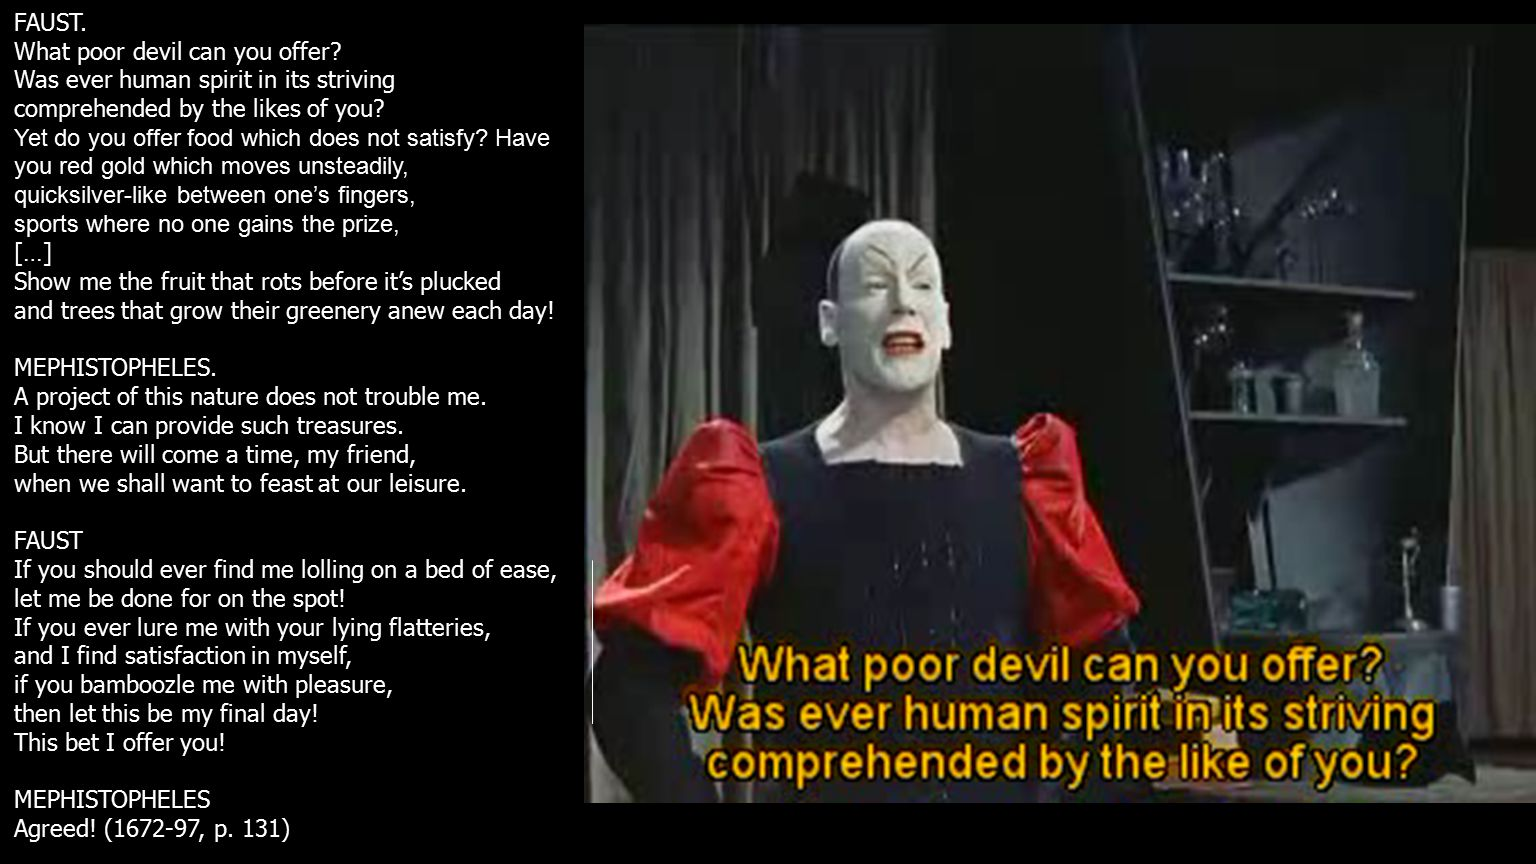 FAUST. What poor devil can you offer.